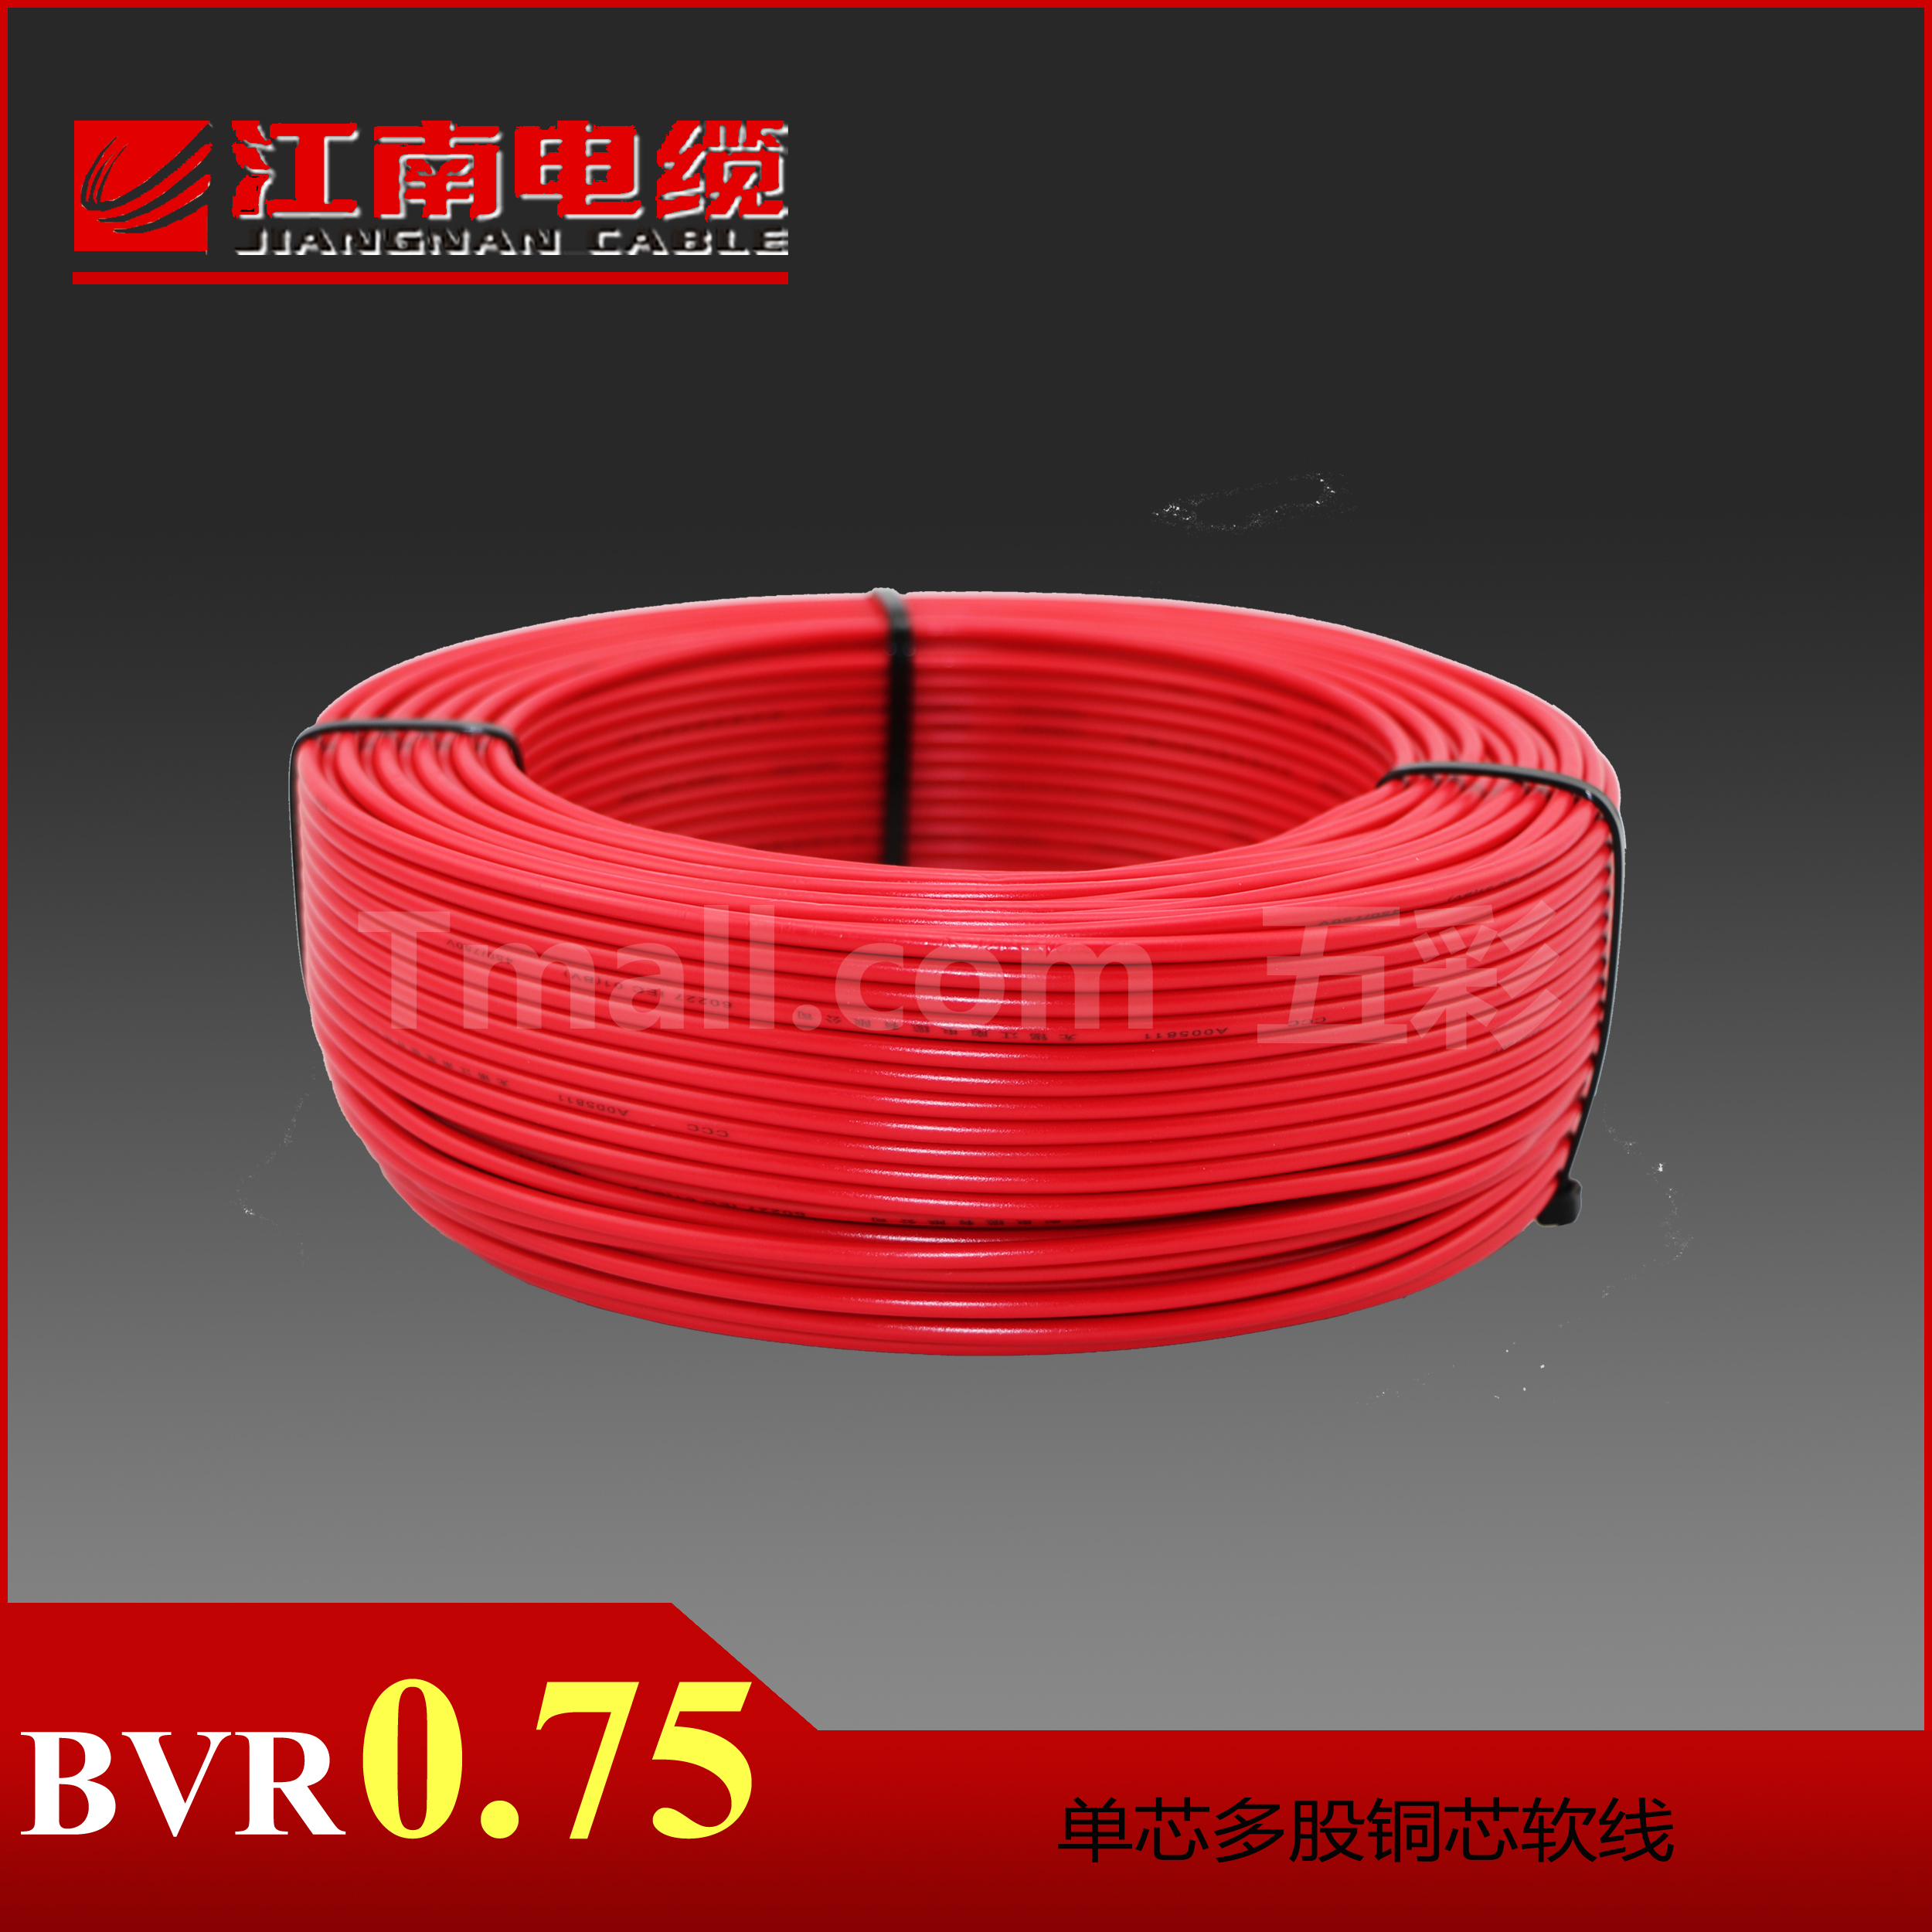 Jiangnan jiangnan multicolored wire and cable bvr0.75 square gb copper decoration cord red and green yellow black and blue double